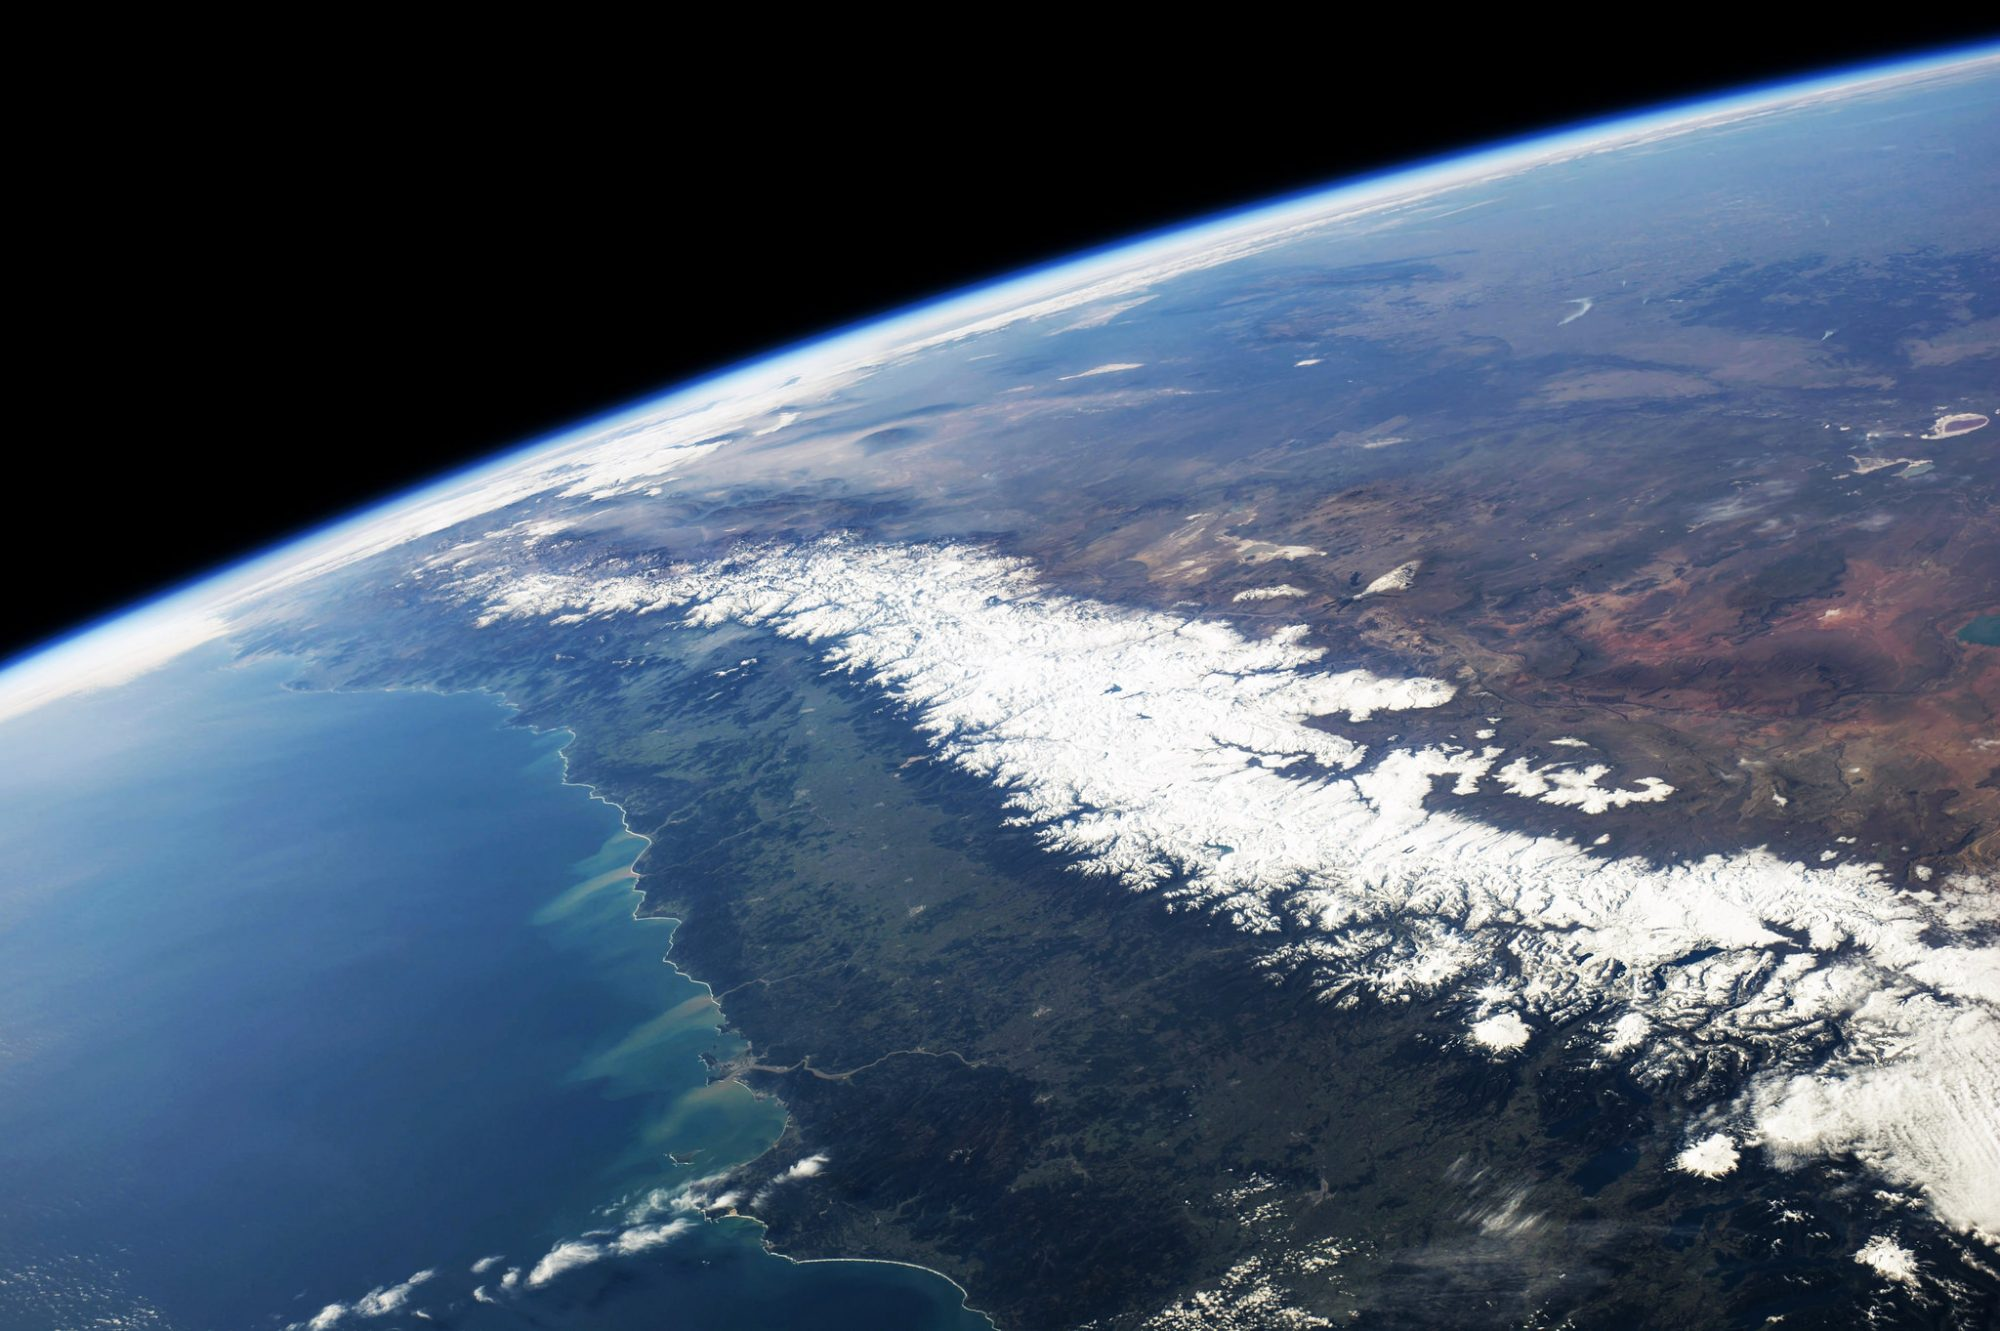 Looking up the Pacific coast of South America at the snow-covered Andes Mountains, which contains the world's largest glaciated area of the tropics (Source: Stuart Rankin/Flickr).